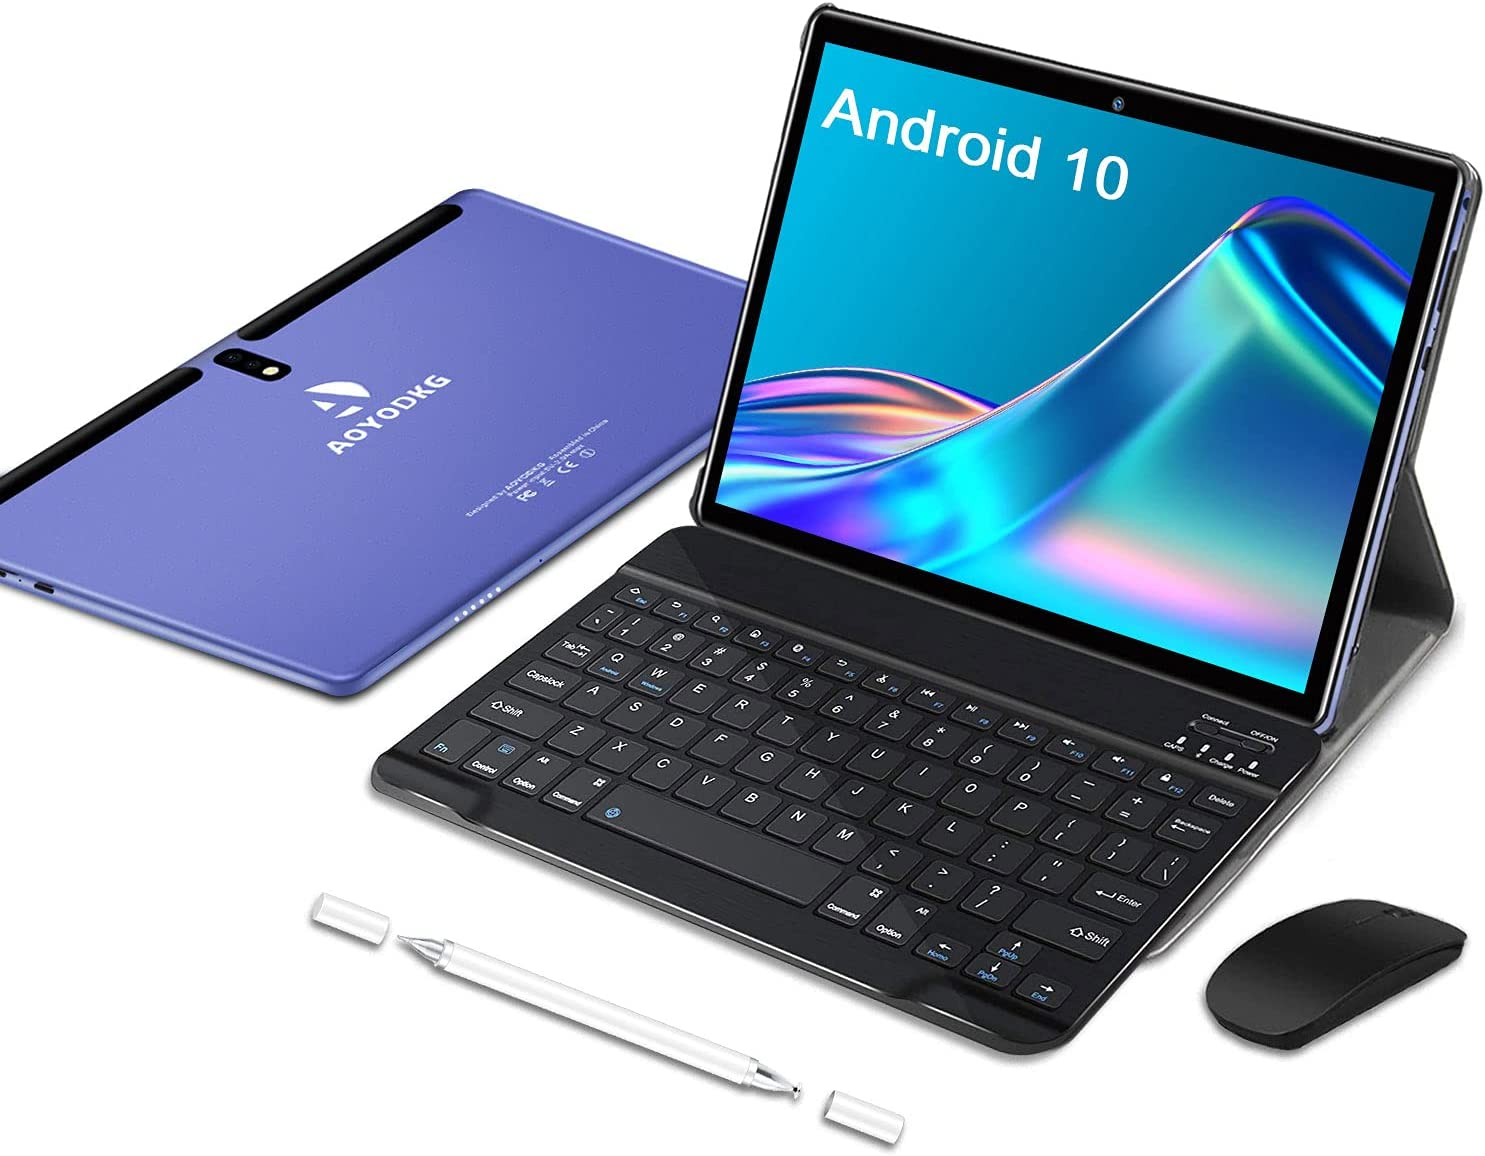 2 in 1 Tablet 10 Inch Android Challenge the lowest price Tablets 128G Pie Keyboard with Max 62% OFF 9.0